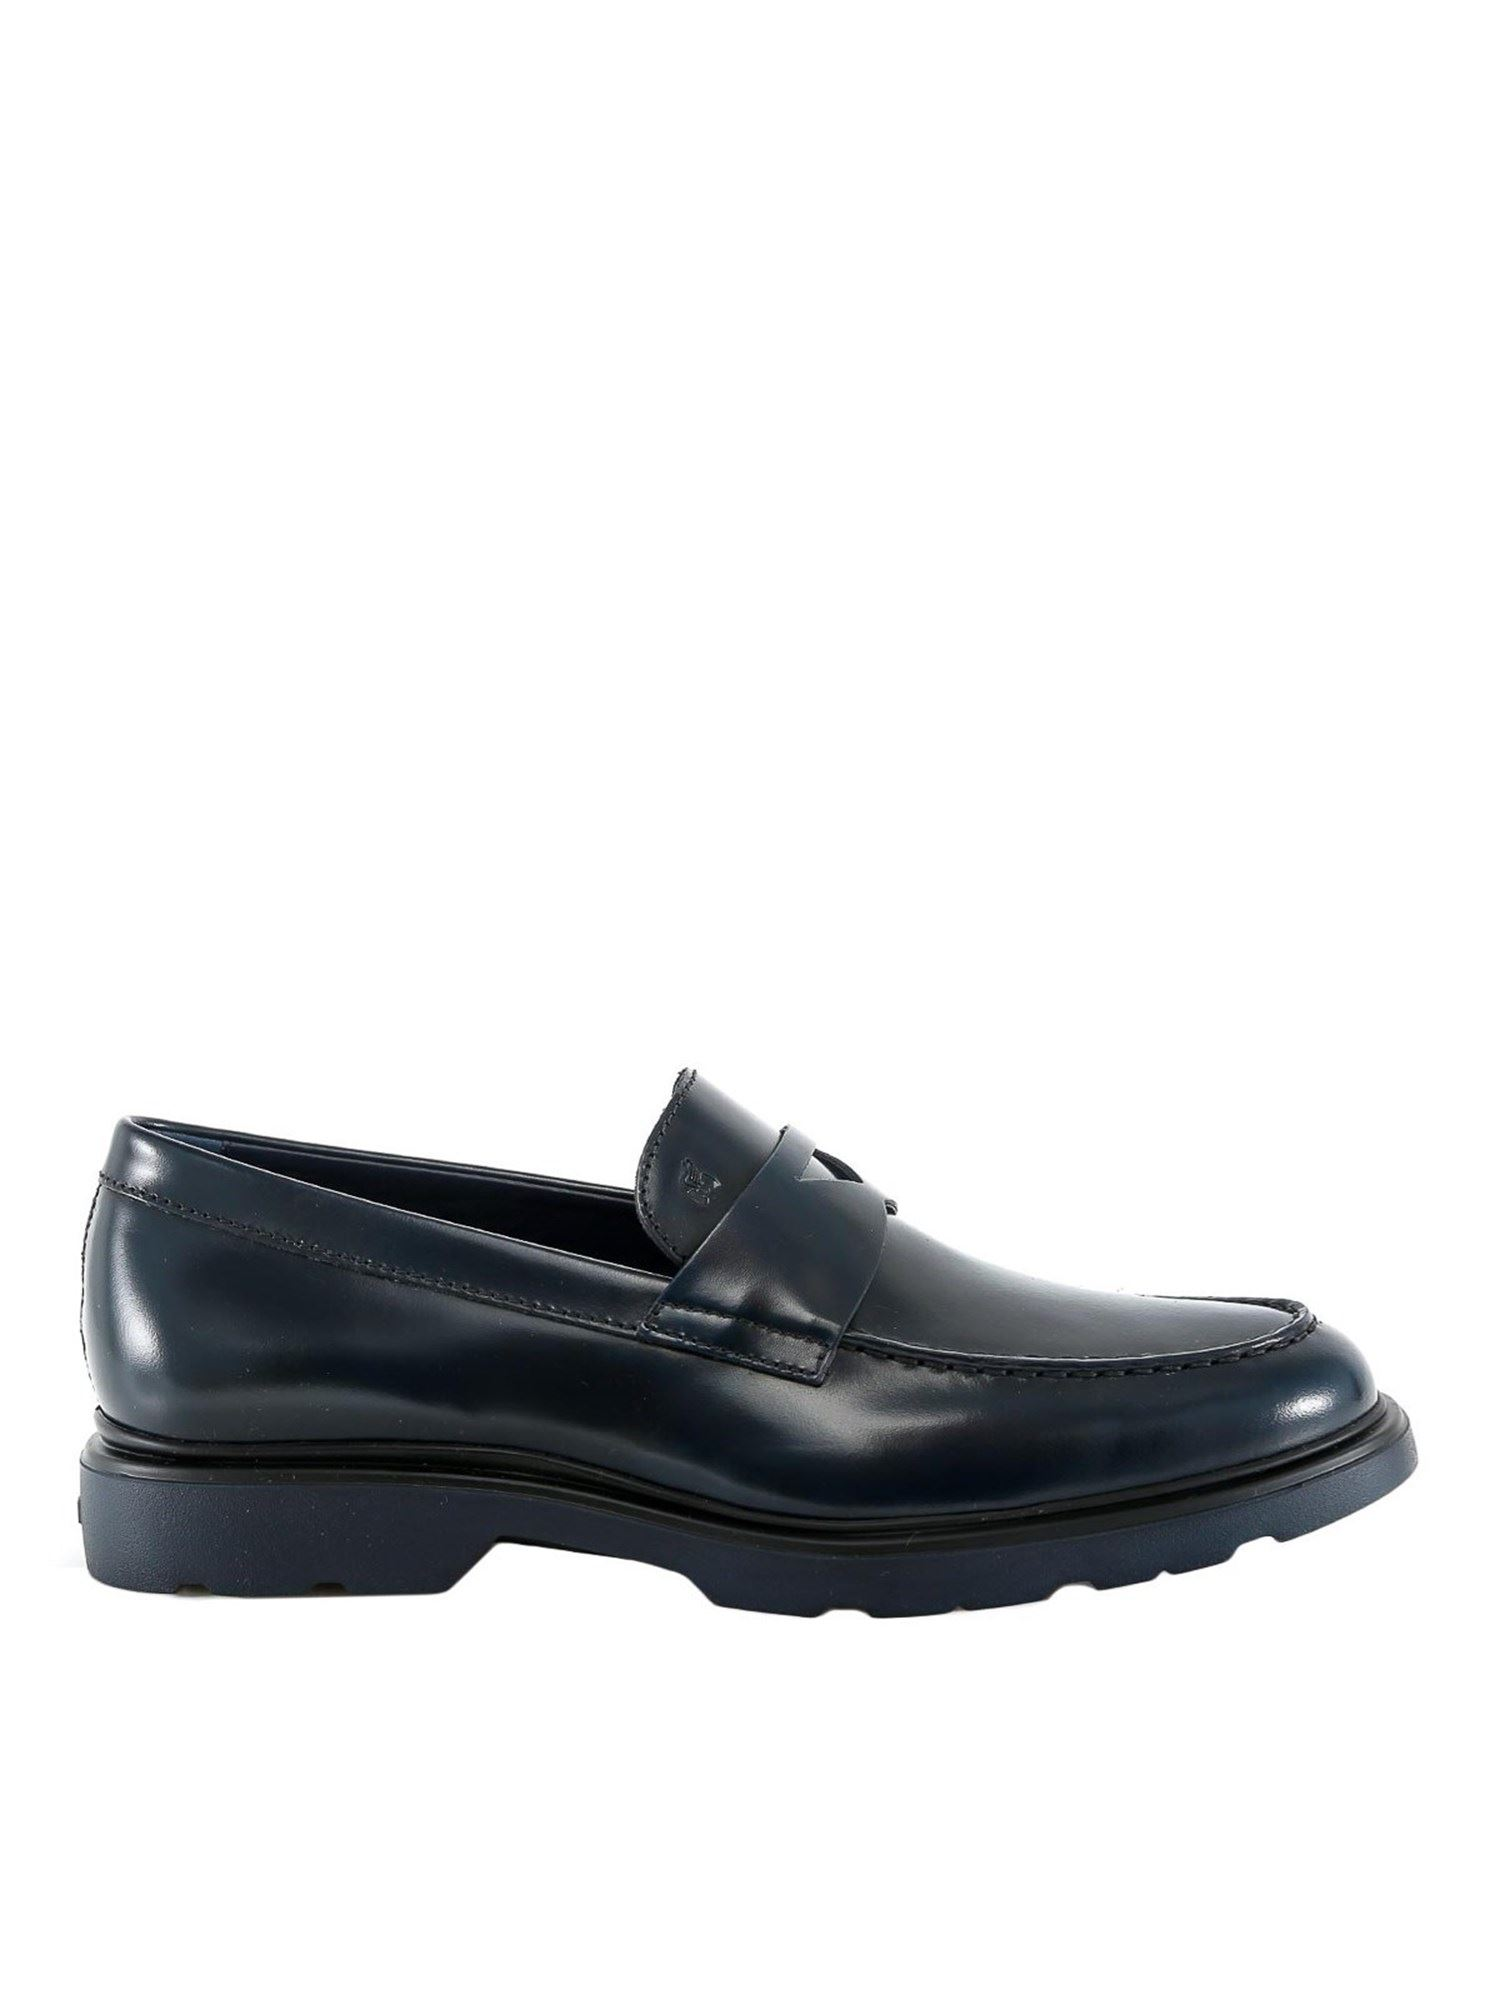 Hogan BLUE LEATHER LOAFERS